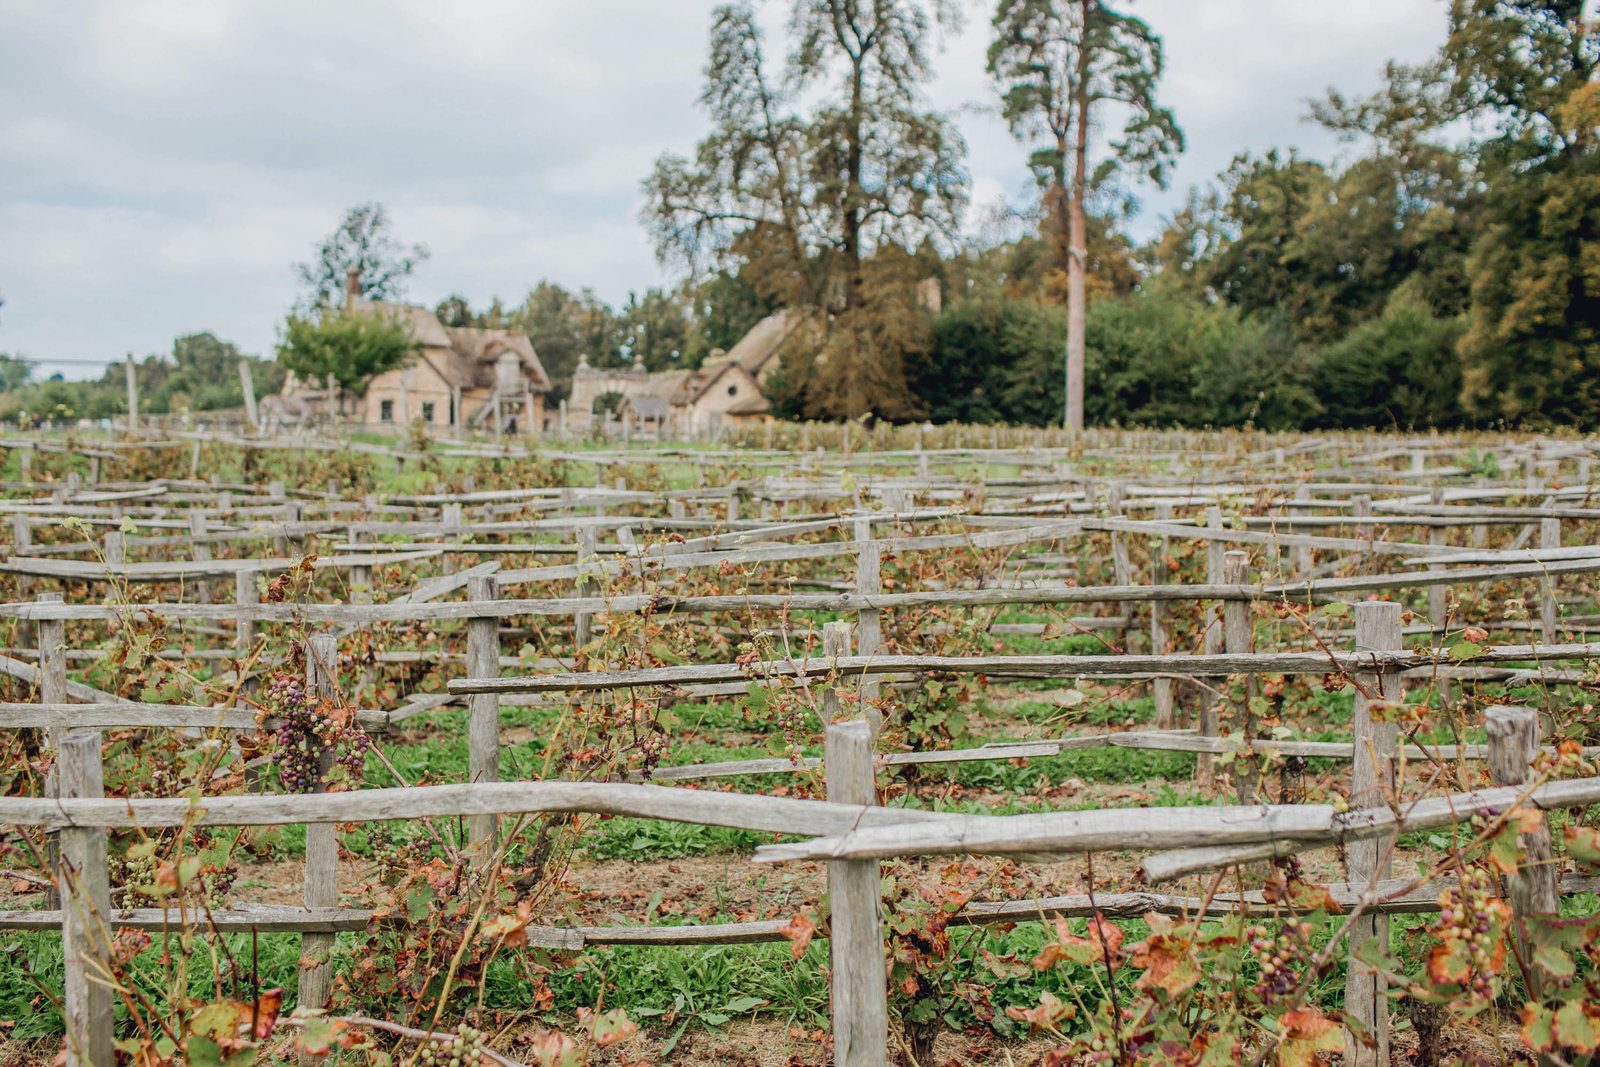 farm-vineyard-marie-antoinette-hamlet-versailles-france-travel-destination-kate-timbers-photography-1694